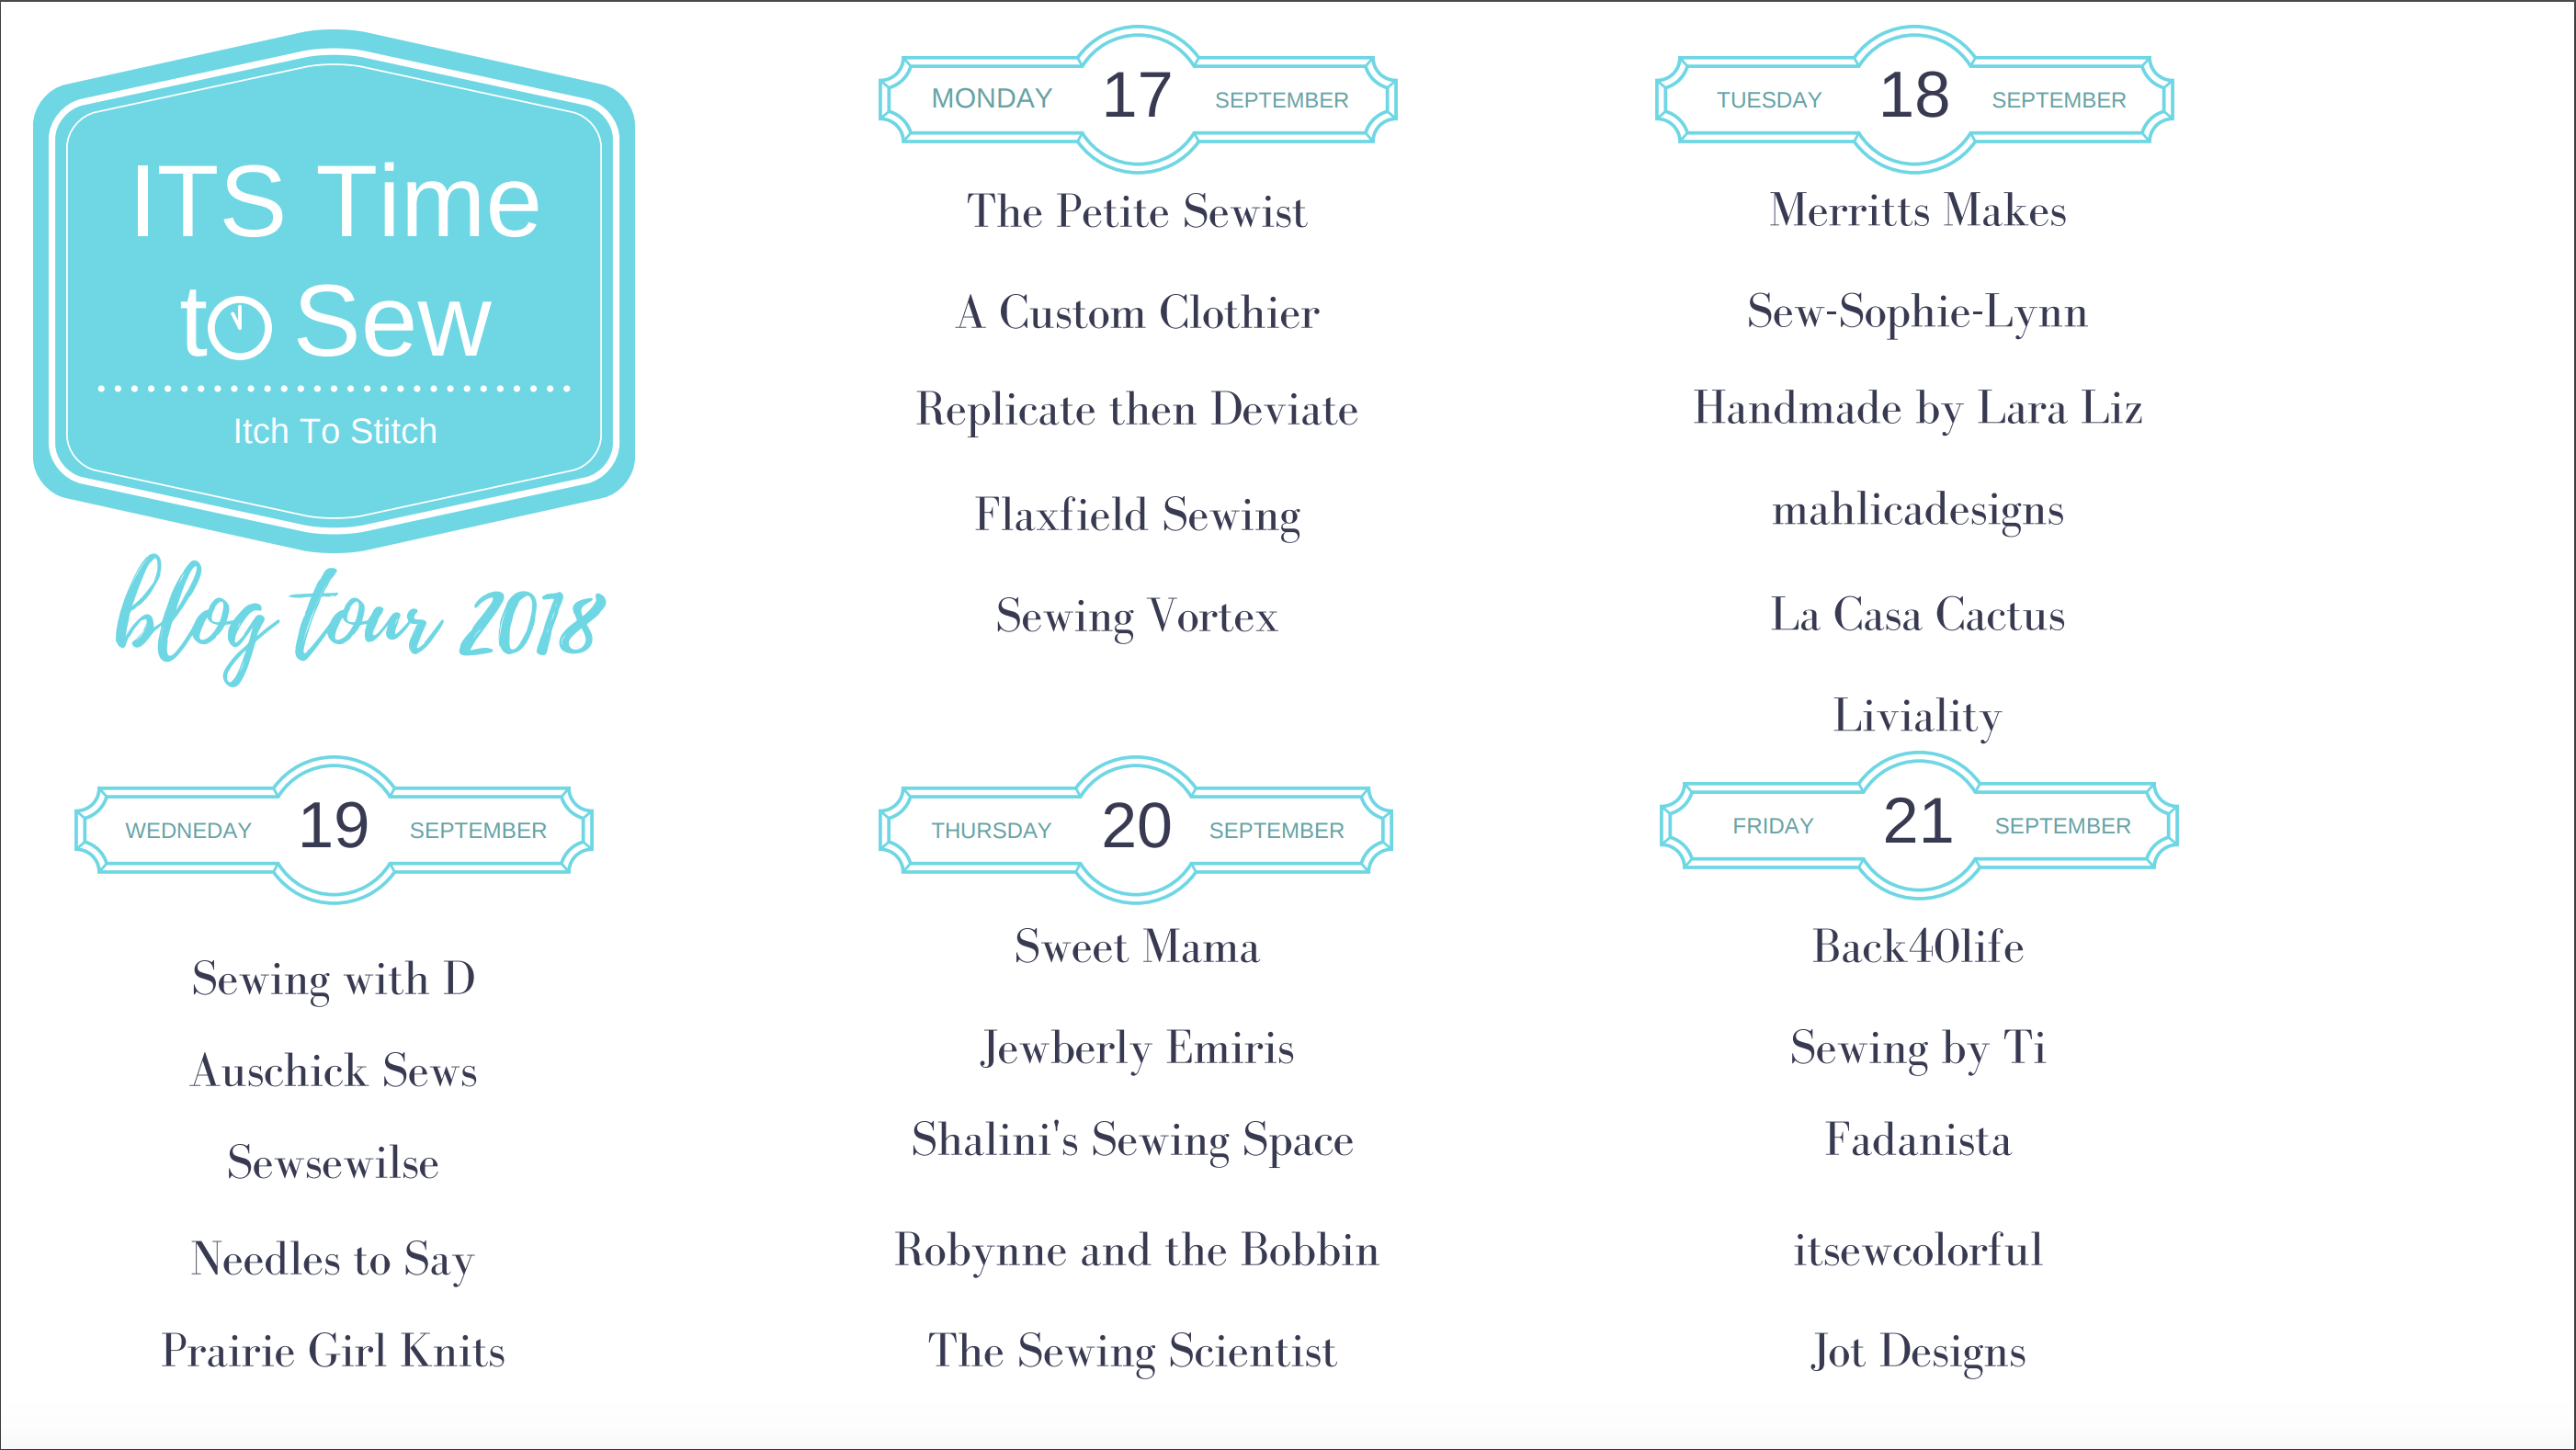 Itch to Stitch ITS Time to Sew Blog Tour